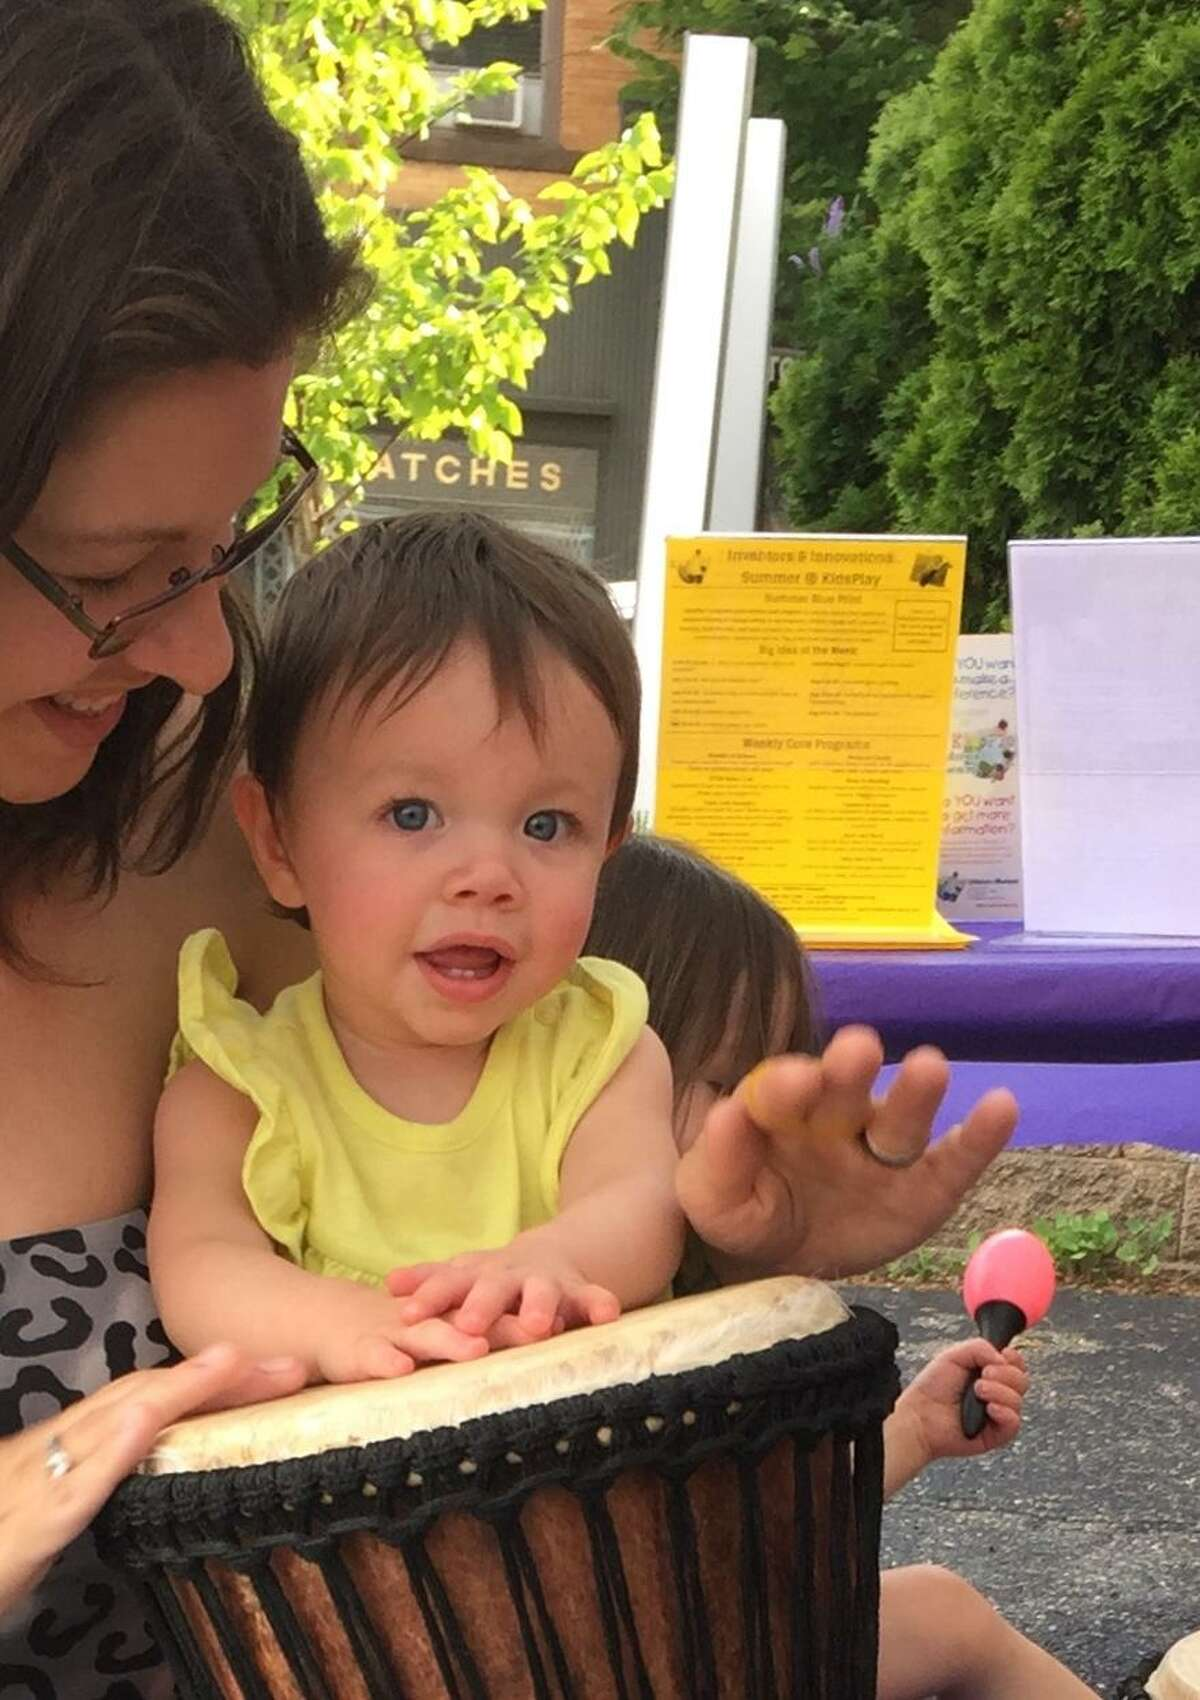 Make Music Day 2019 returns to Torrington and area communities the weekend of June 21. Participants and facilitators to run events and programs are needed. Above, a mother and child take part in a drumming exercise in 2018.